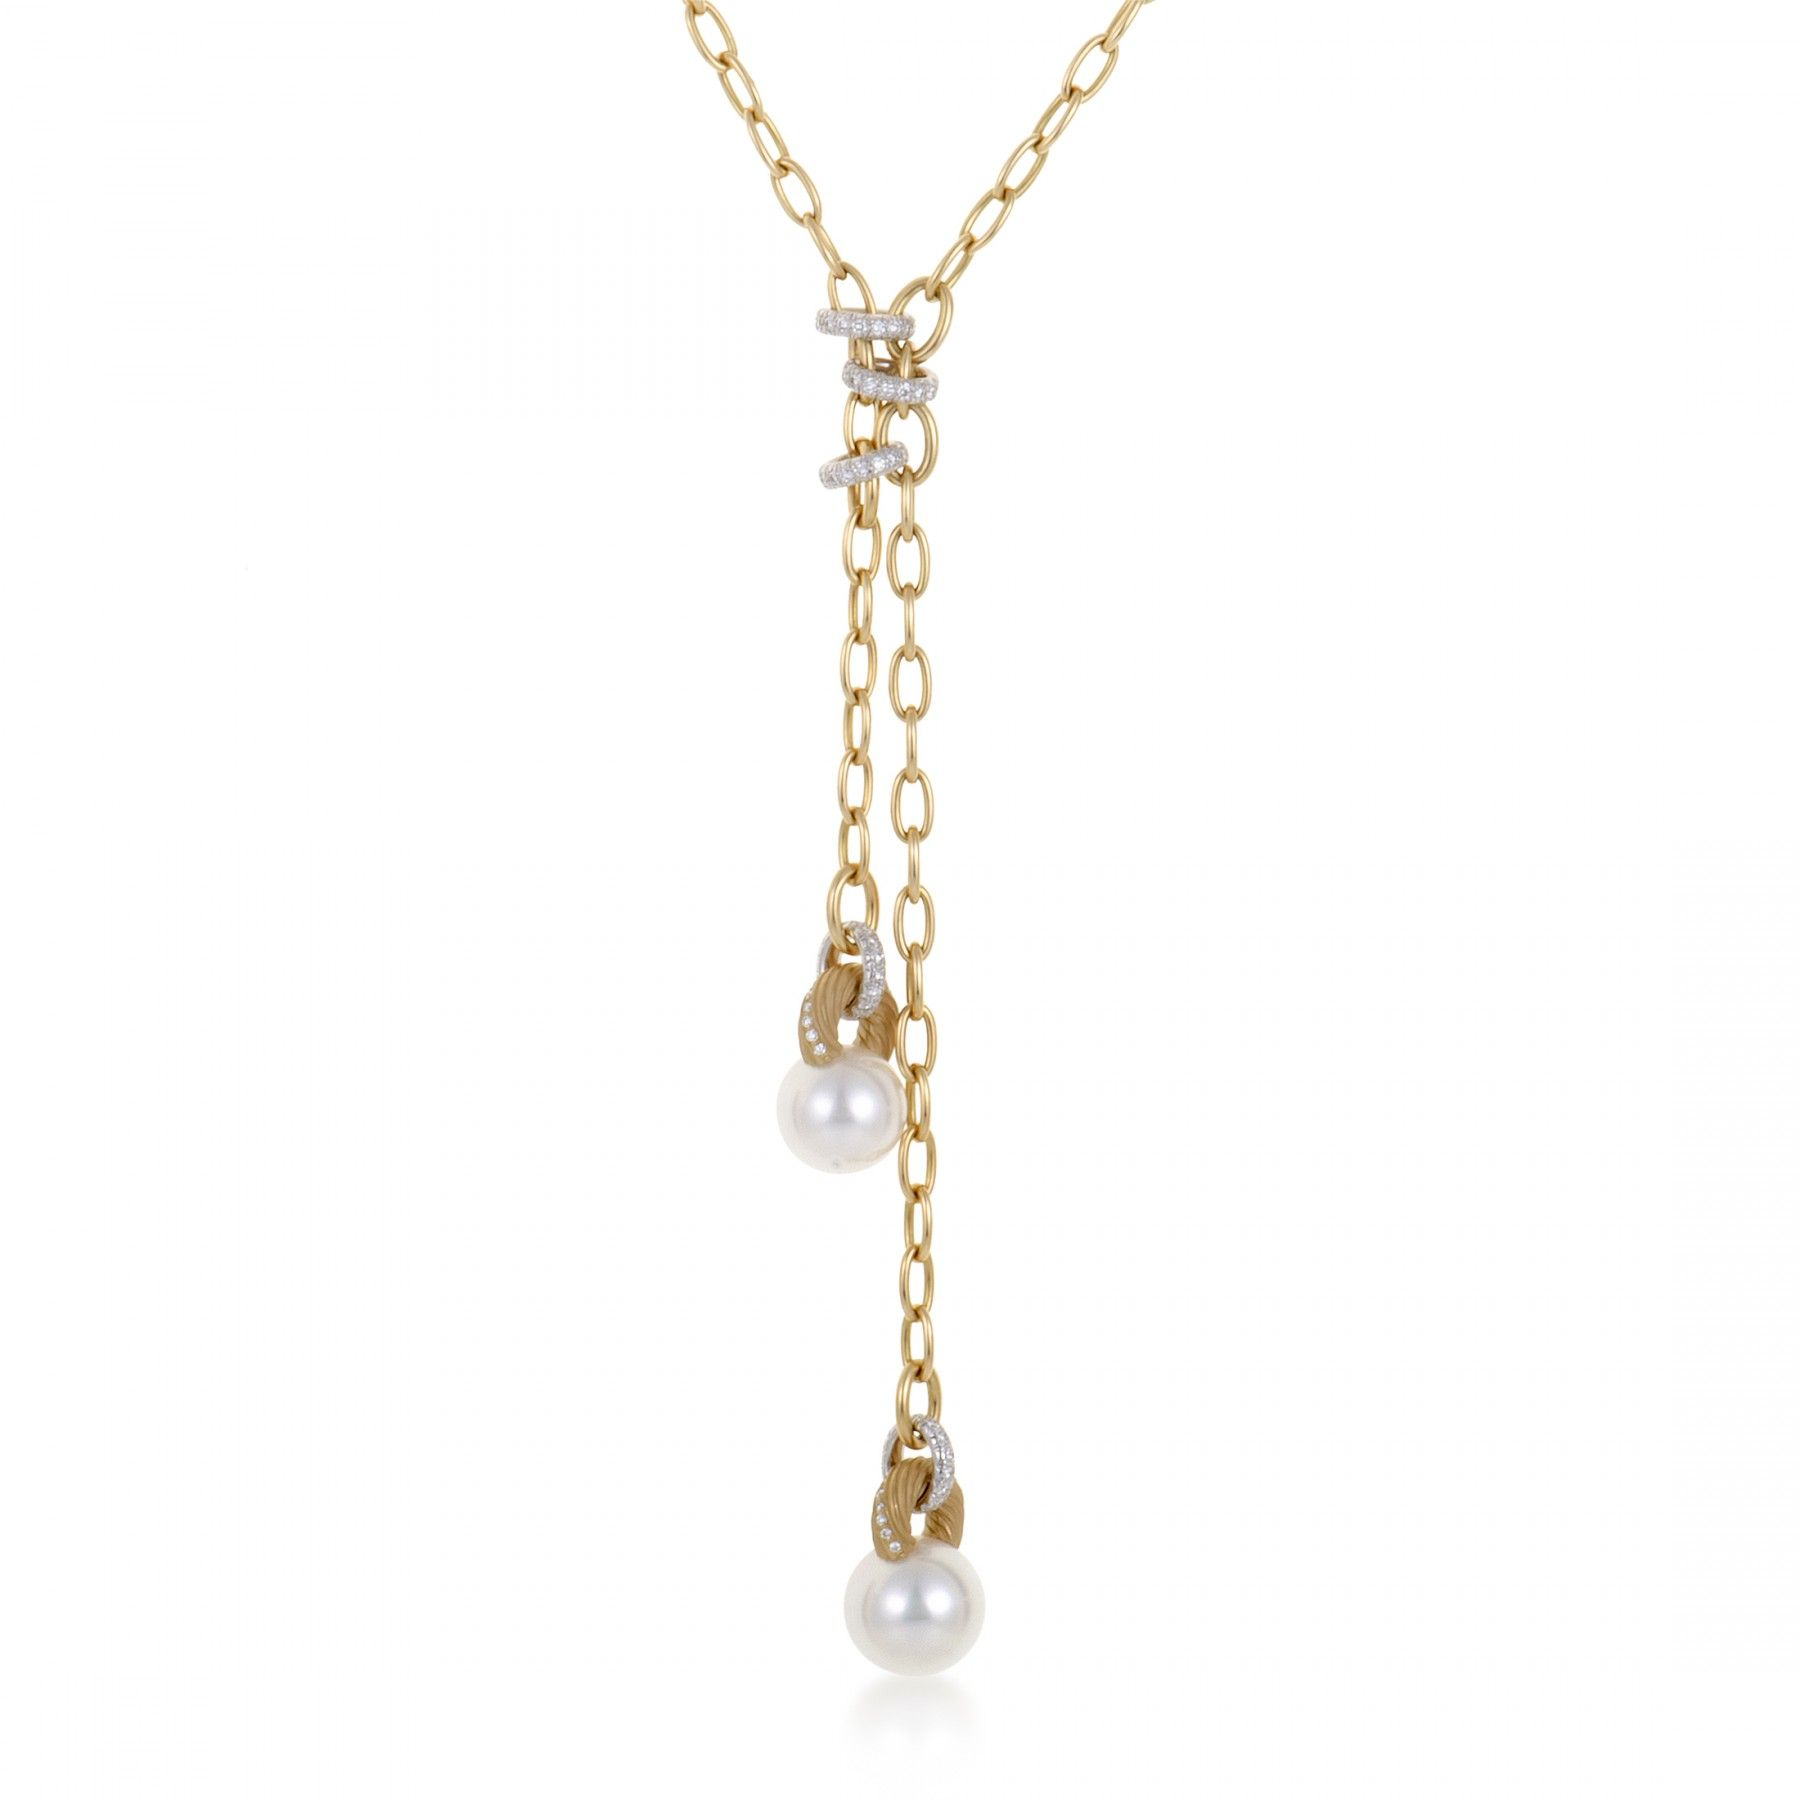 18k yellow and white gold and pearl dangling